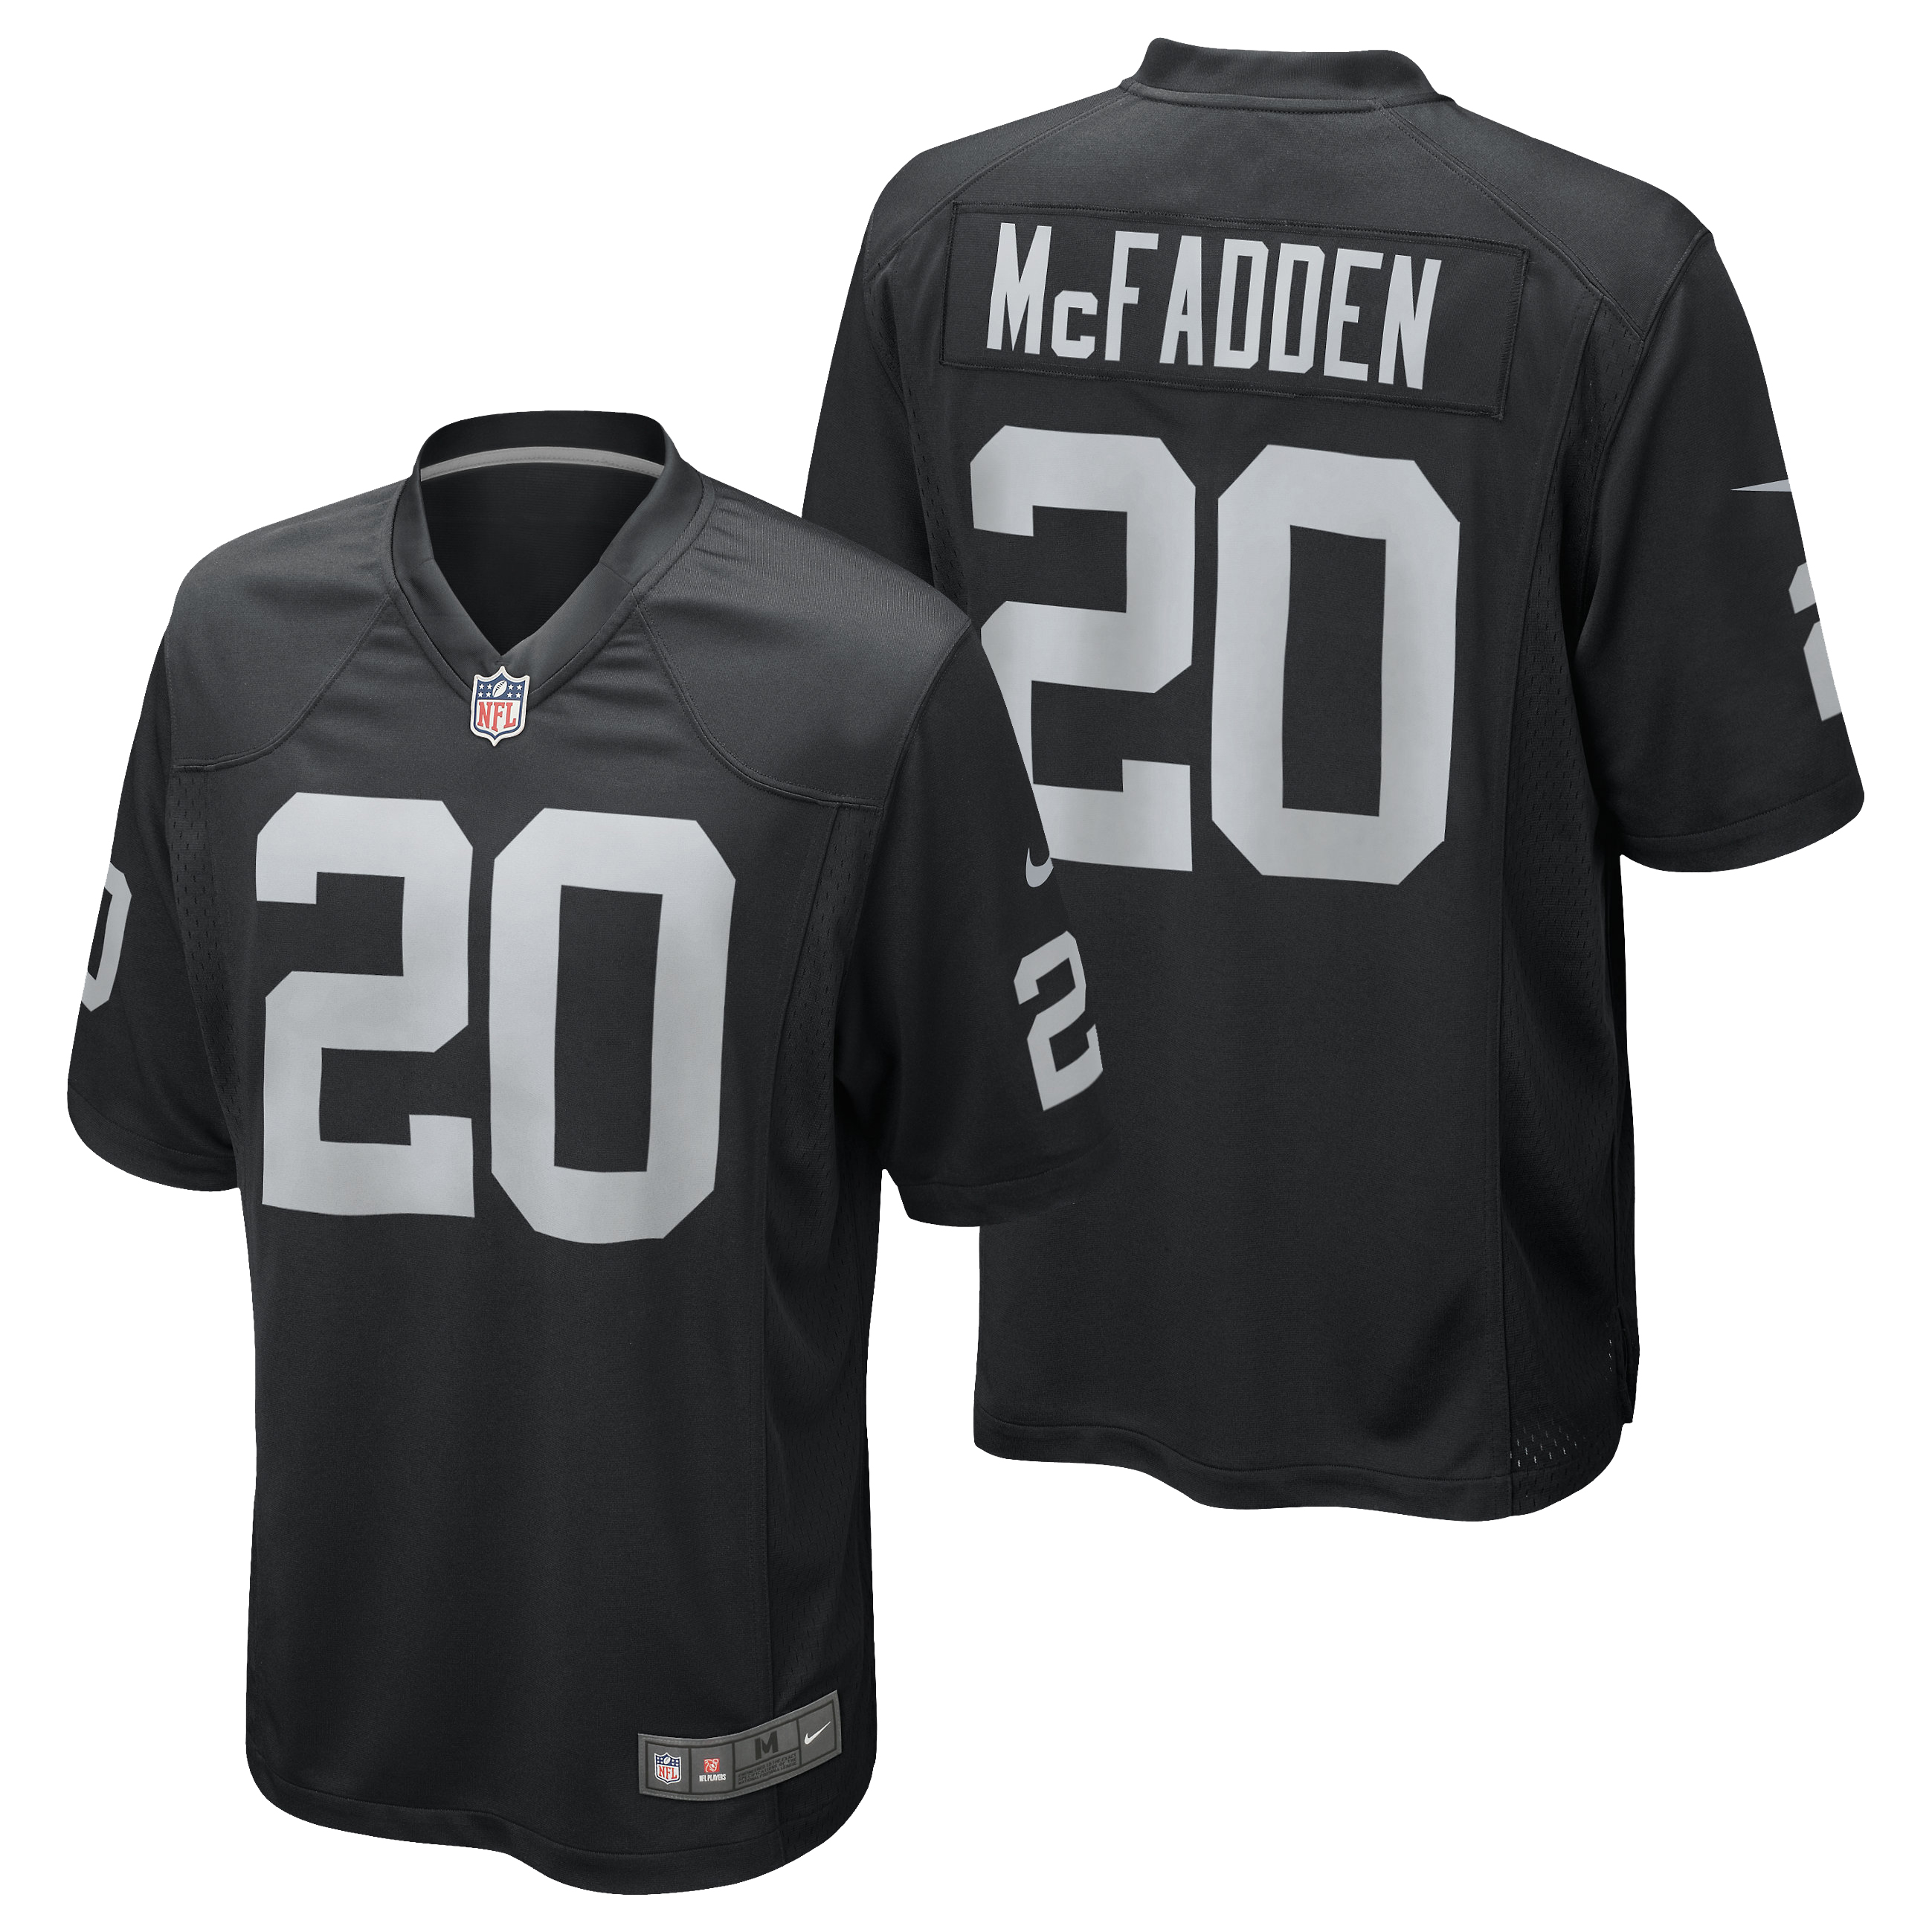 Oakland Raiders Home Game Jersey - Darren McFadden